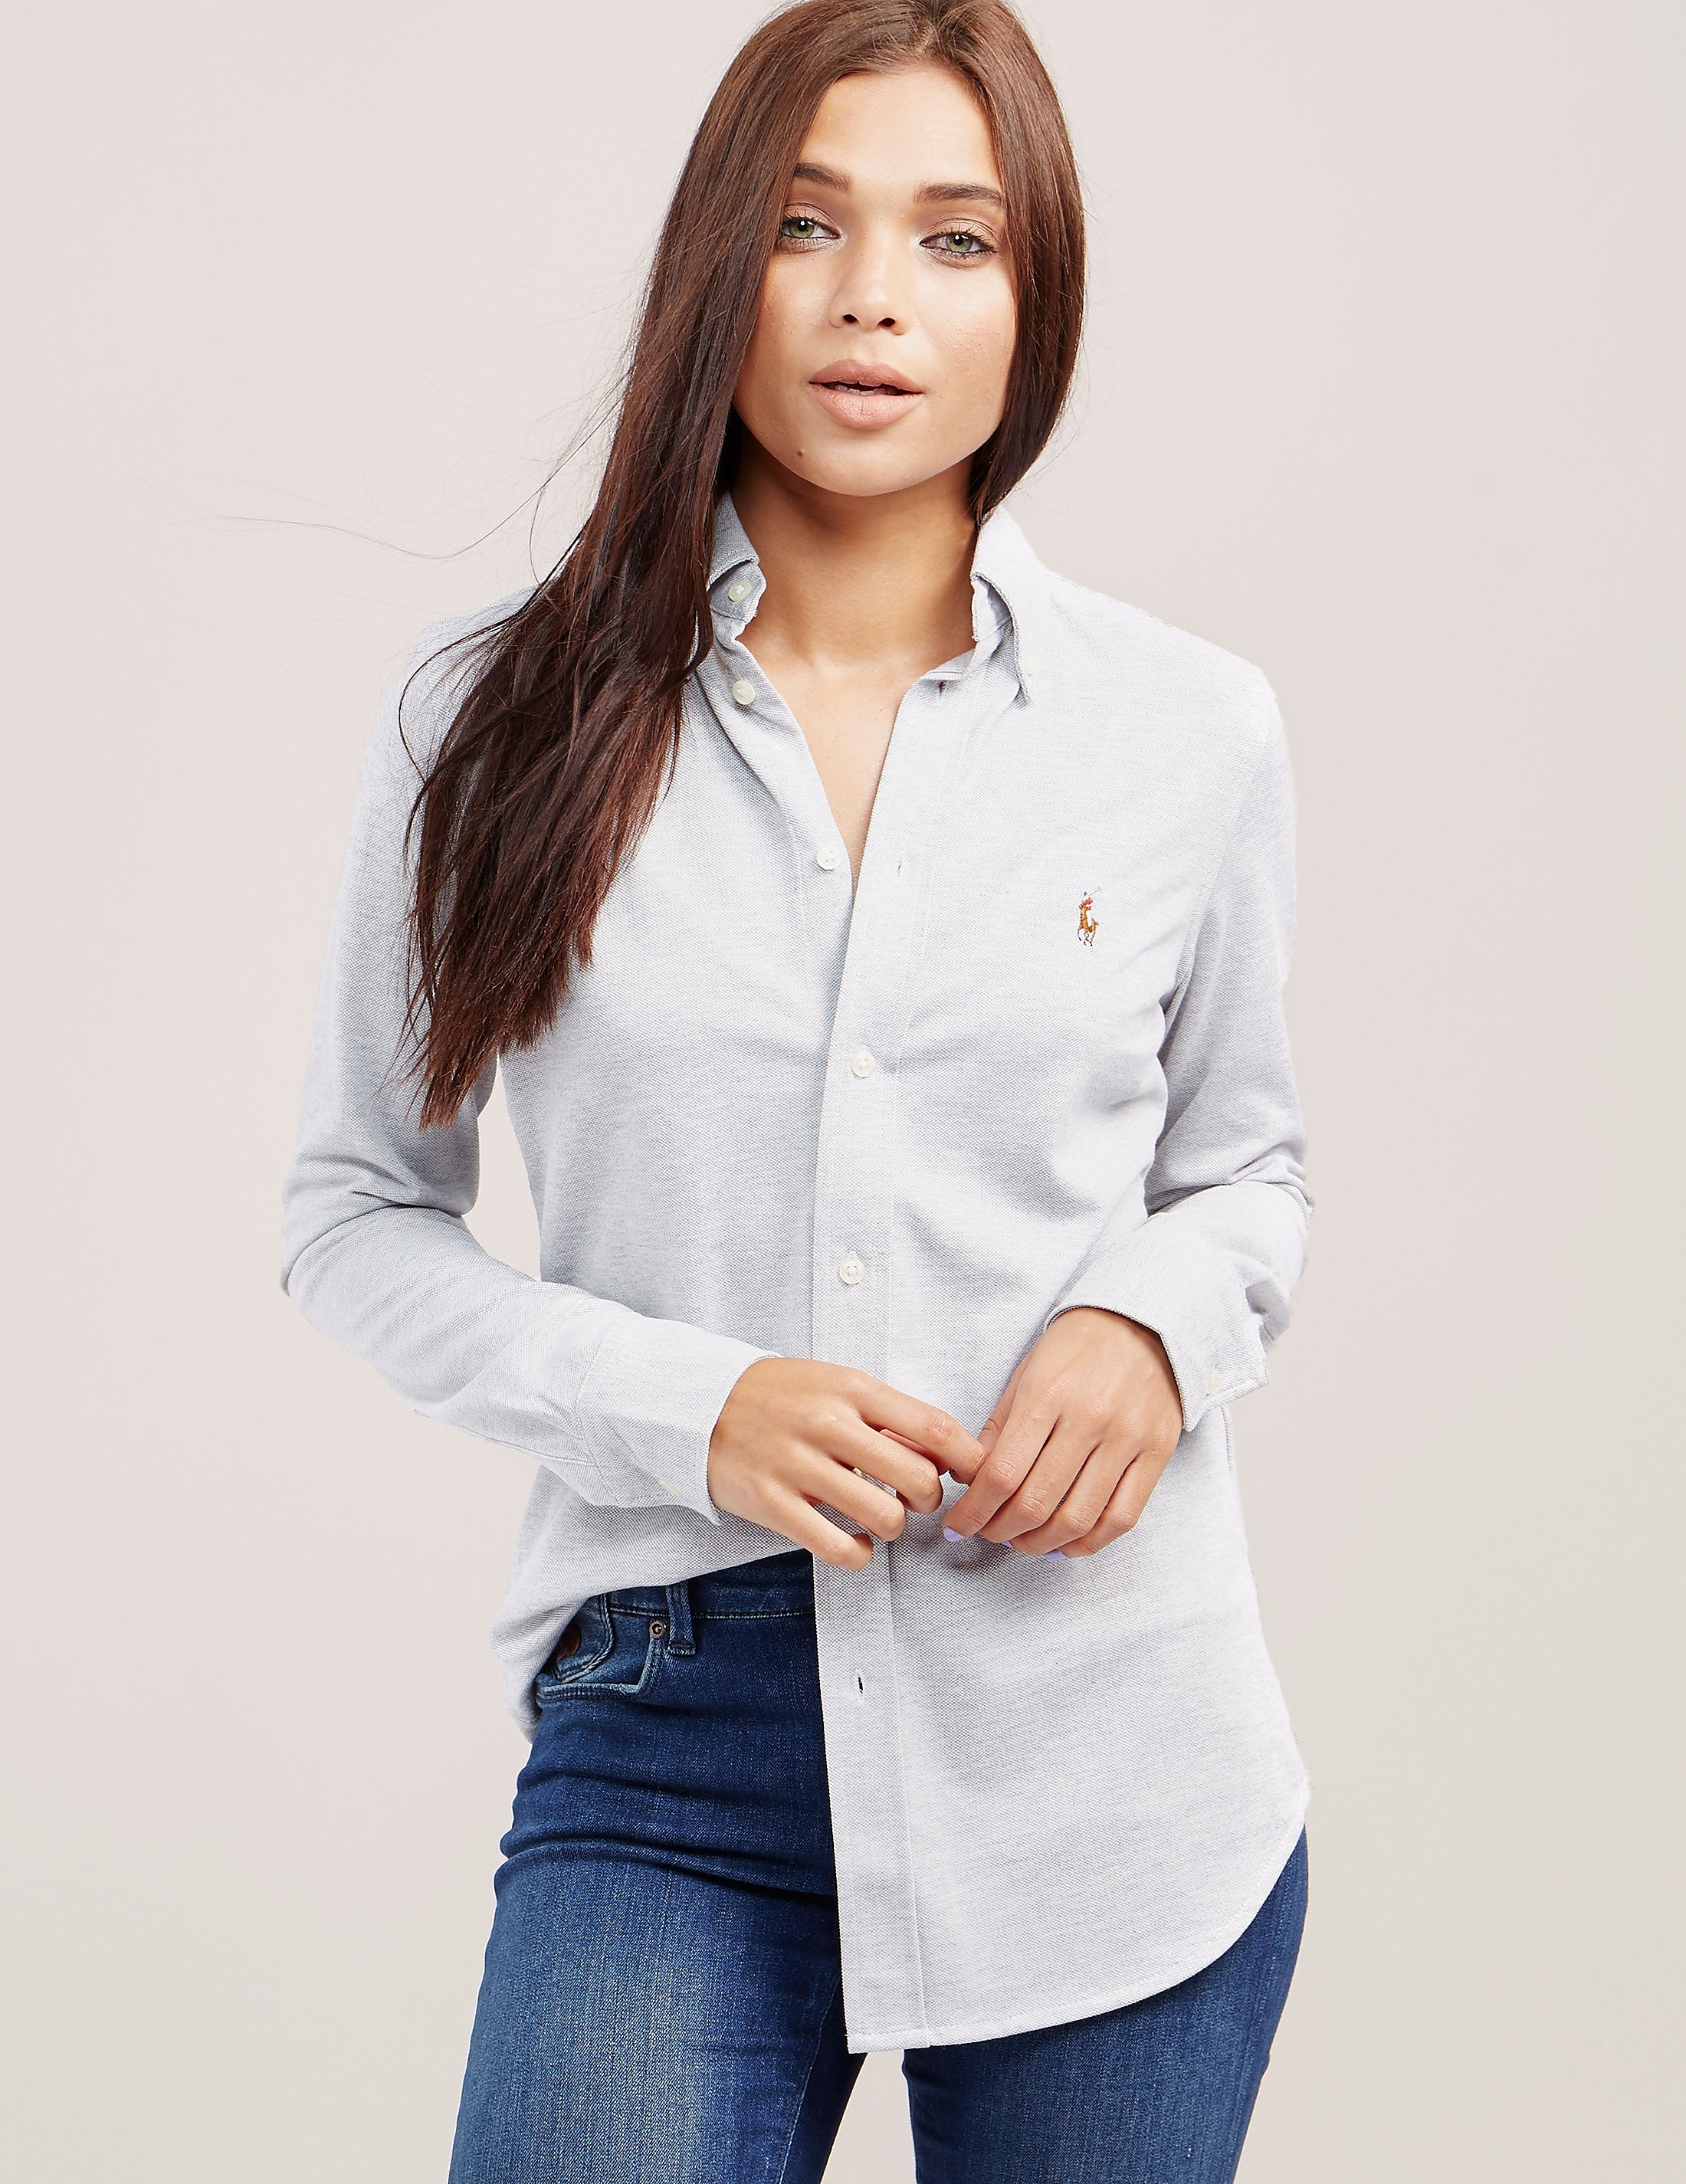 Polo Ralph Lauren Heidi Shirt - Online Exclusive